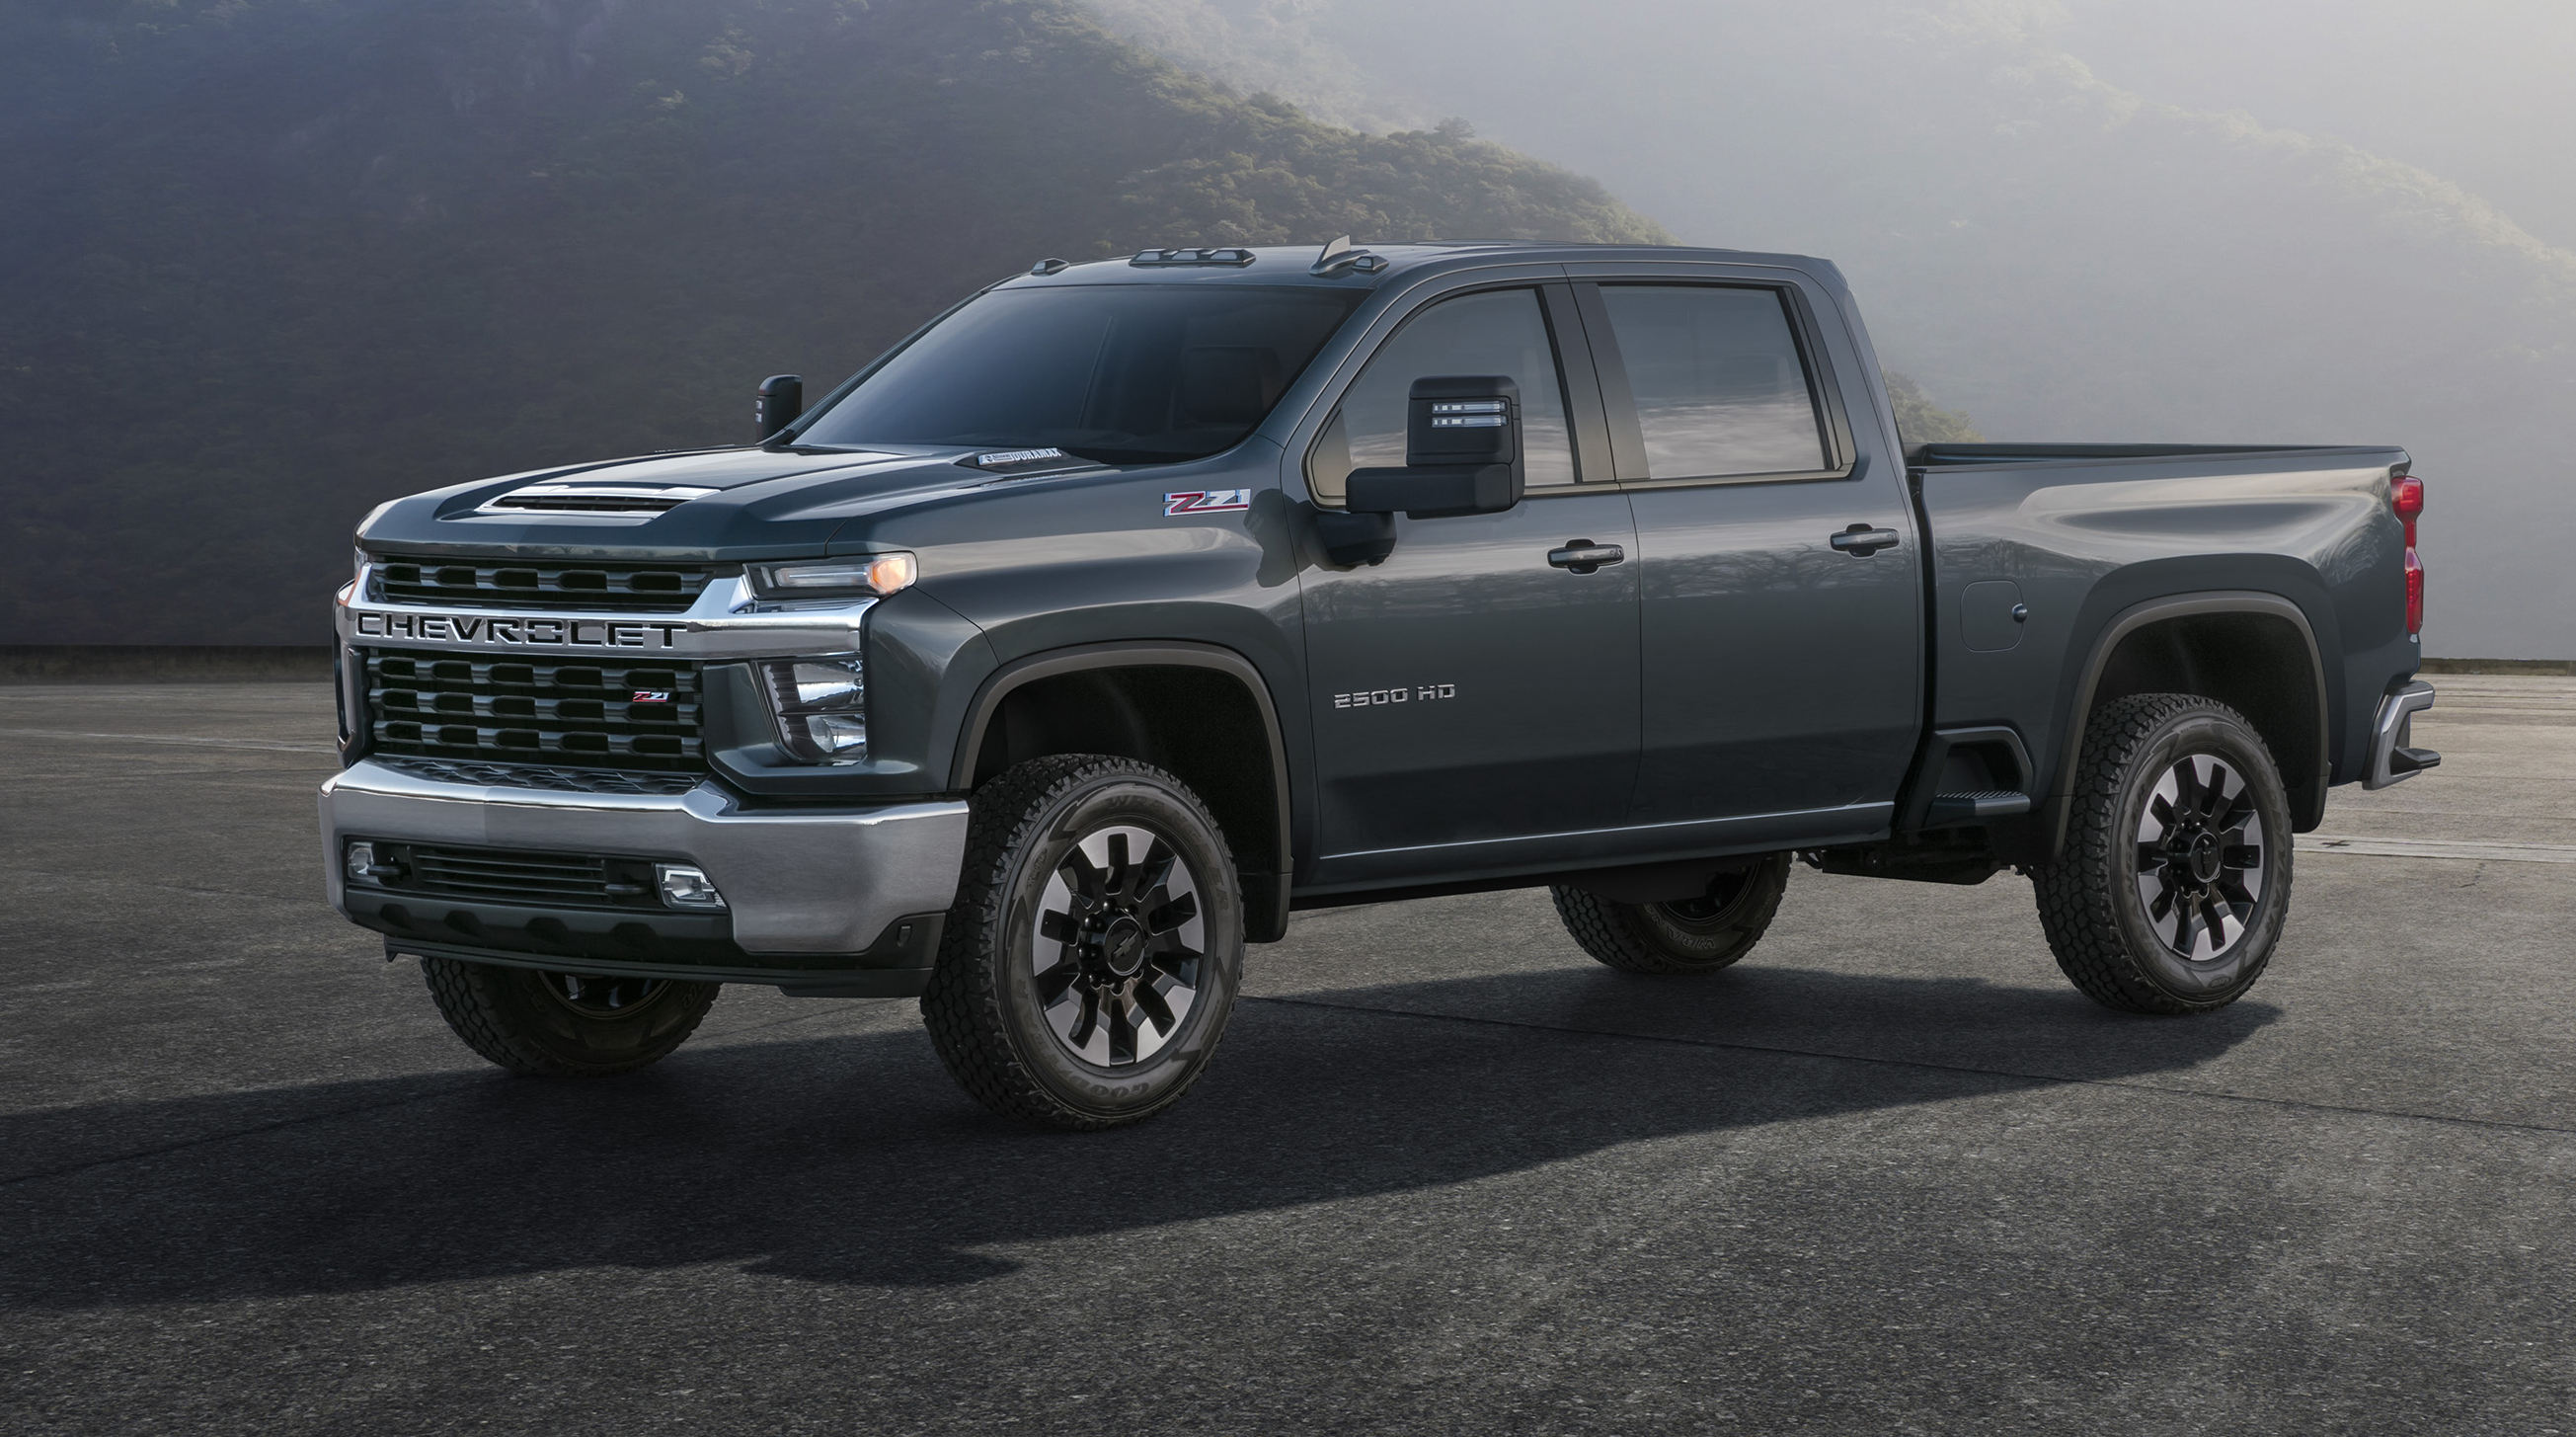 49 All New 2020 Silverado 1500 2500 Hd Specs and Review